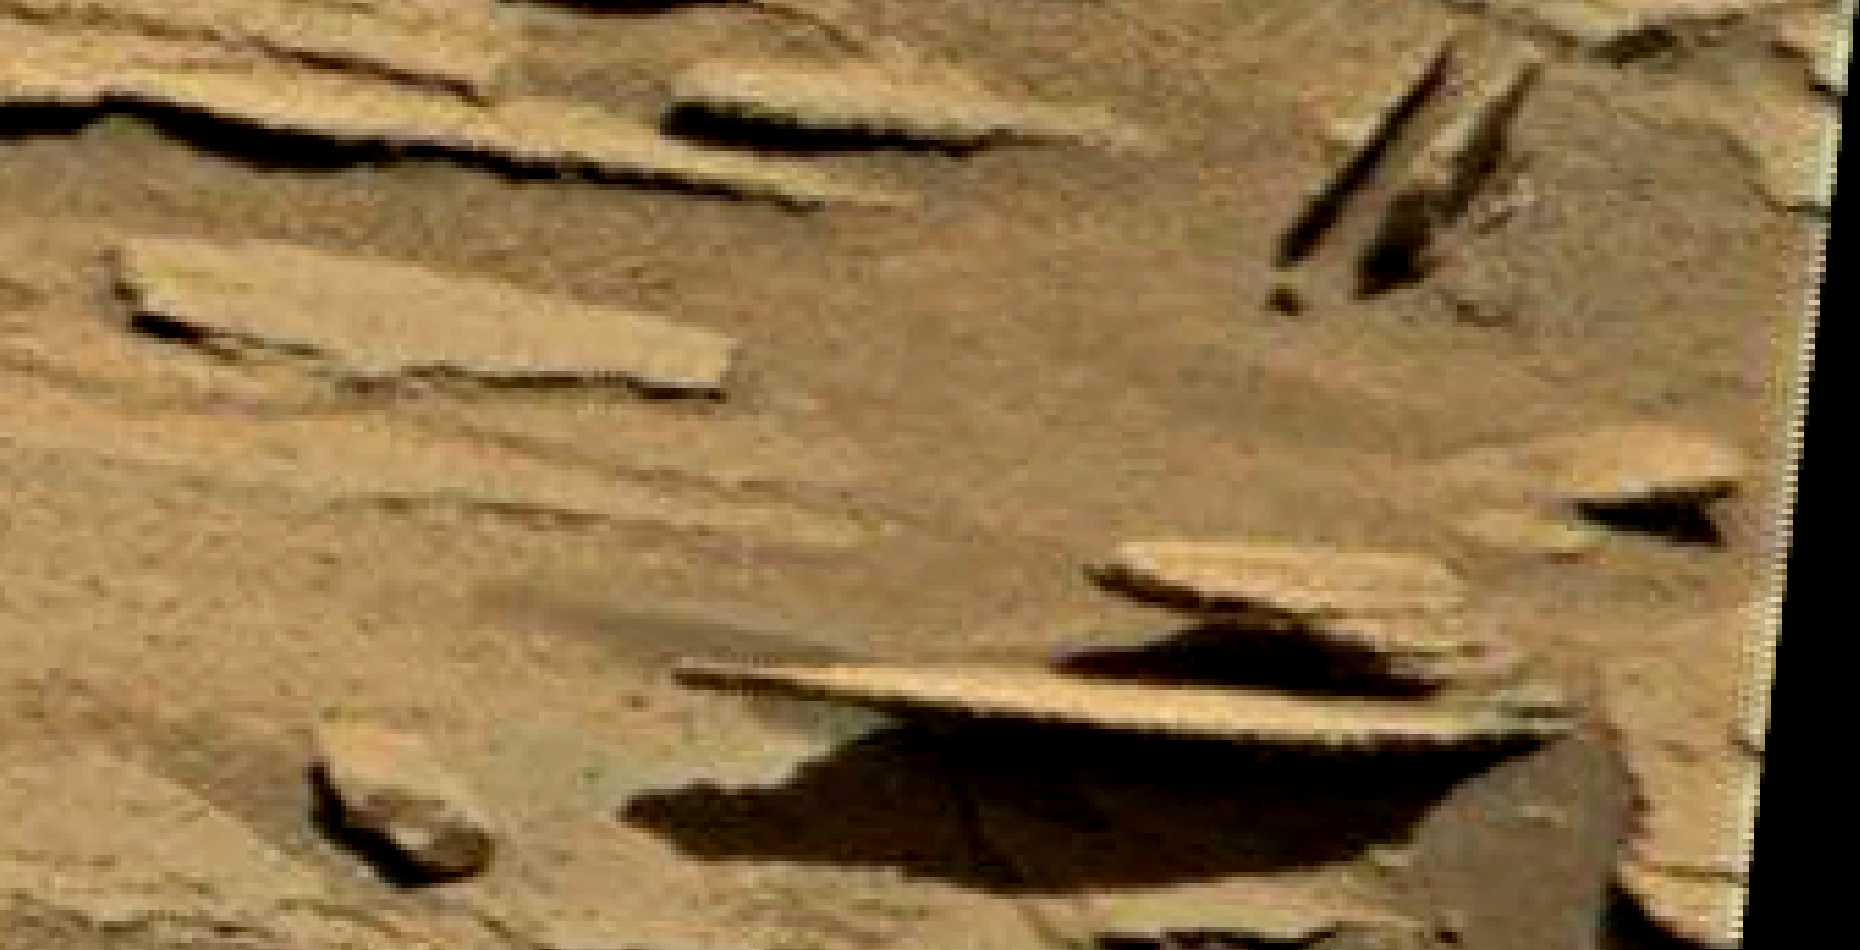 mars sol 1346 anomaly-artifacts 2 was life on mars